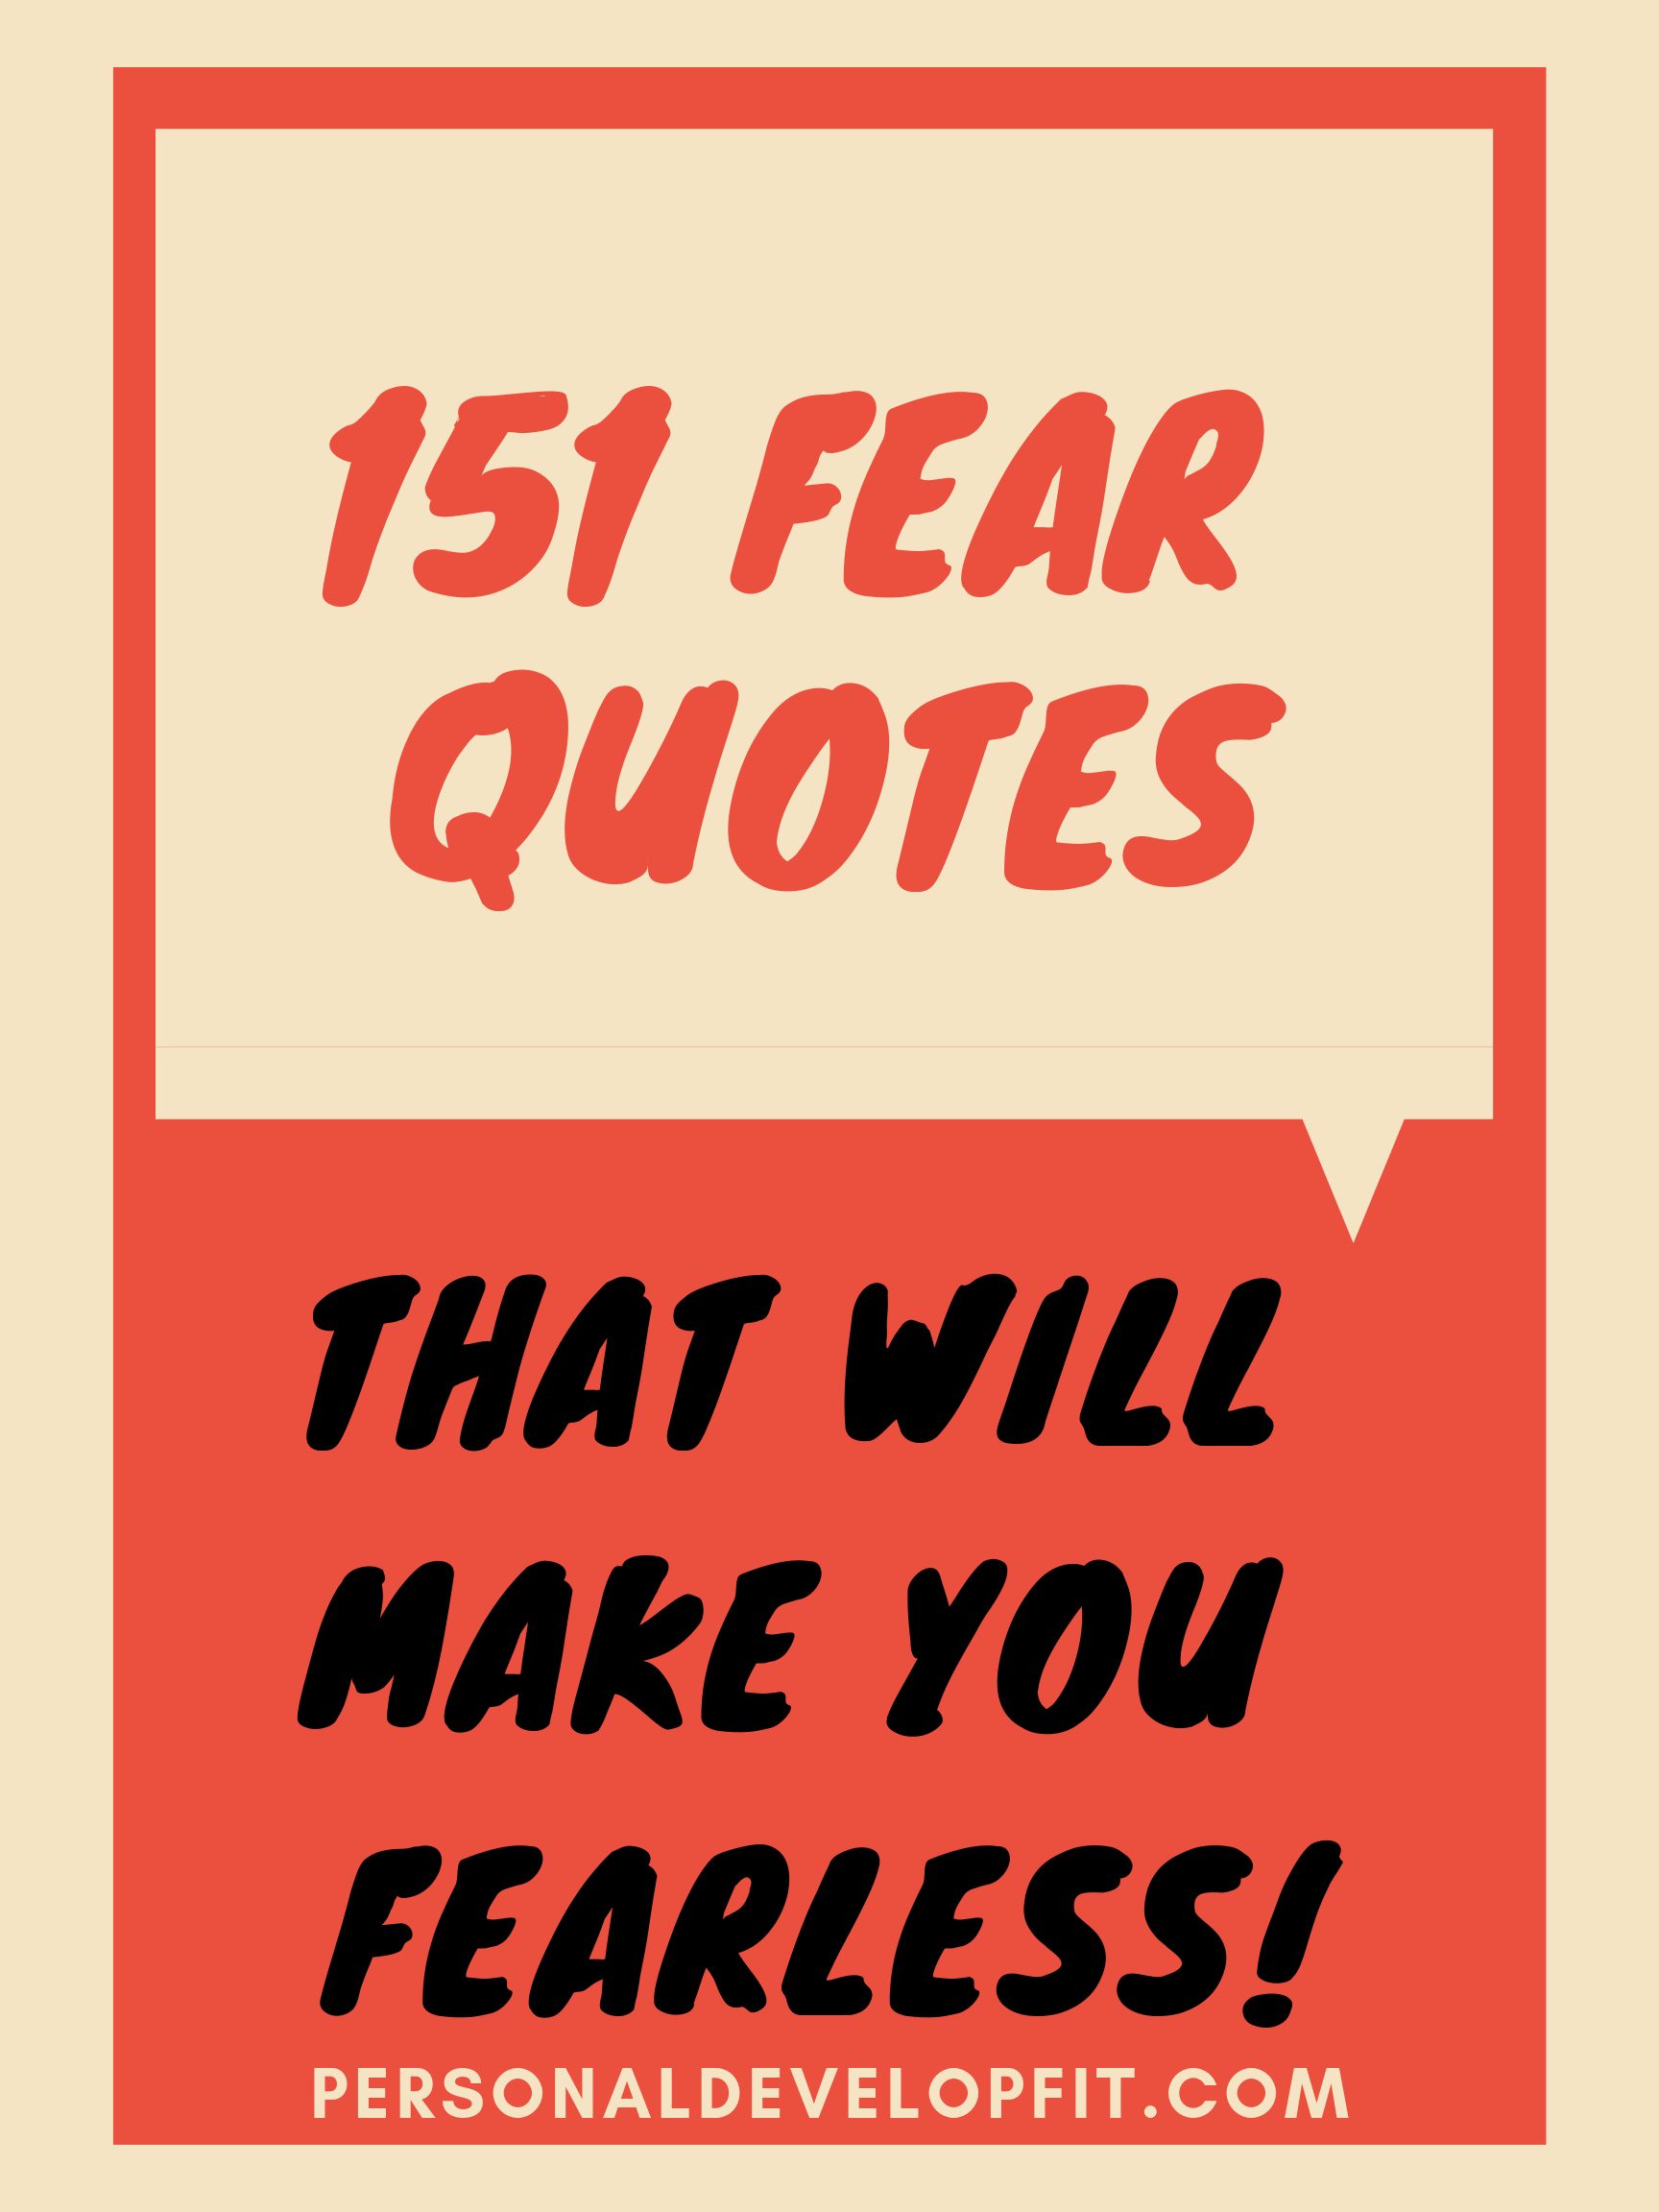 The Best 151 Fear Quotes And Sayings -